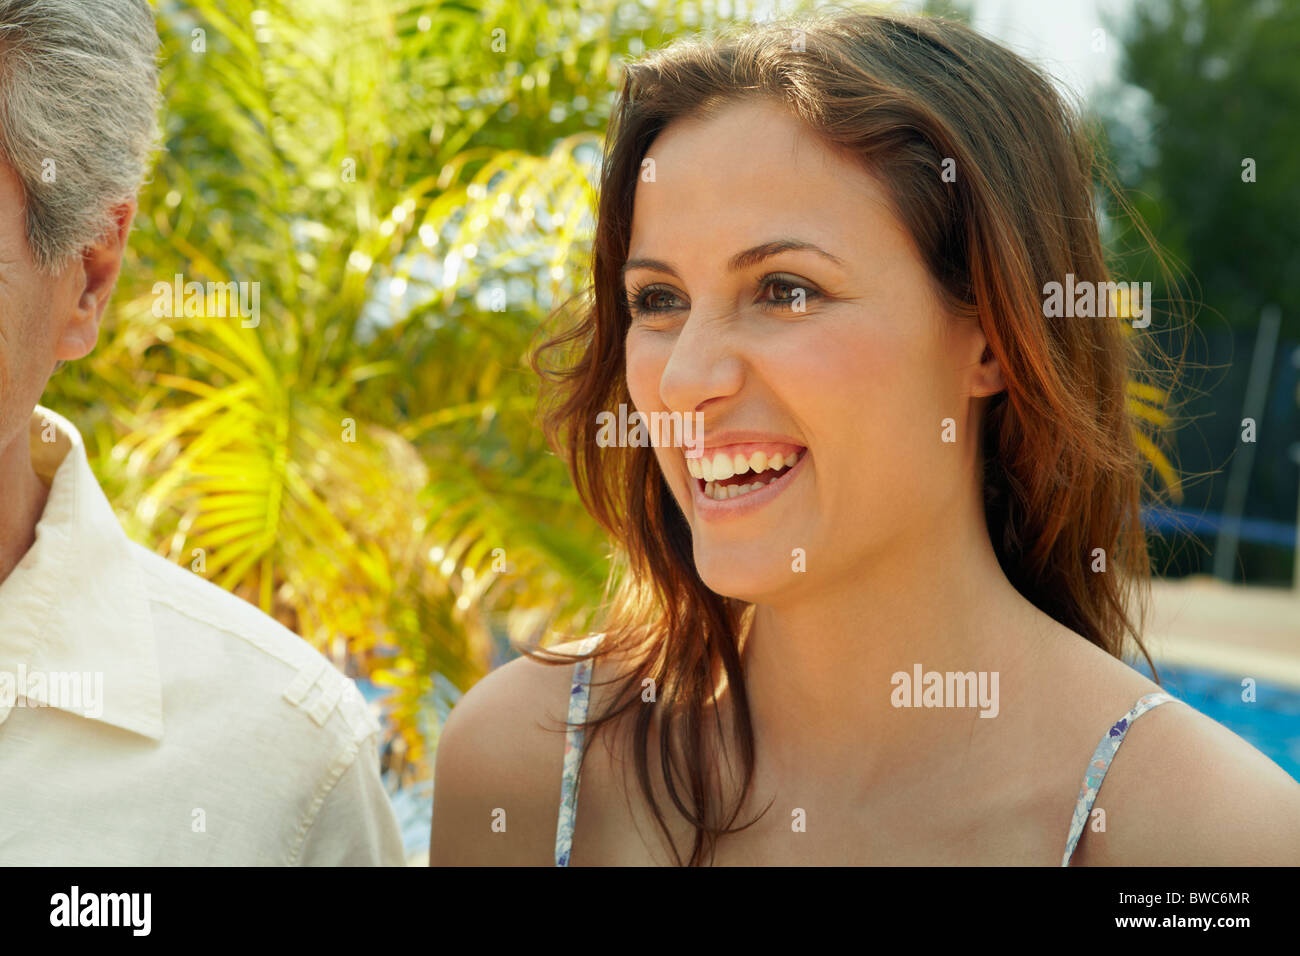 Portrait of beautiful woman laughing - Stock Image